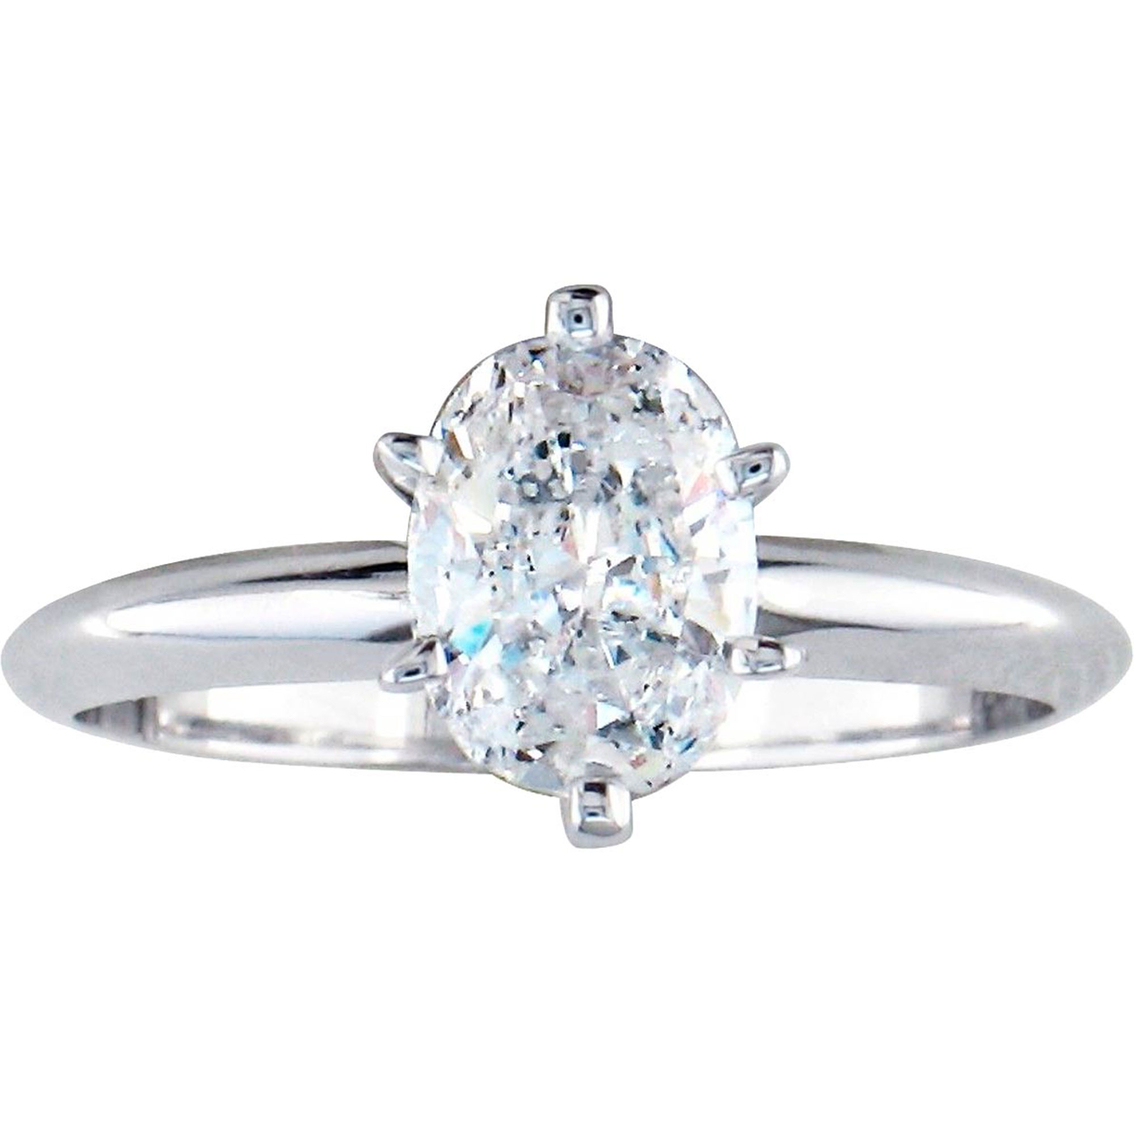 14k white gold 1 ct oval cut diamond solitaire ring size. Black Bedroom Furniture Sets. Home Design Ideas